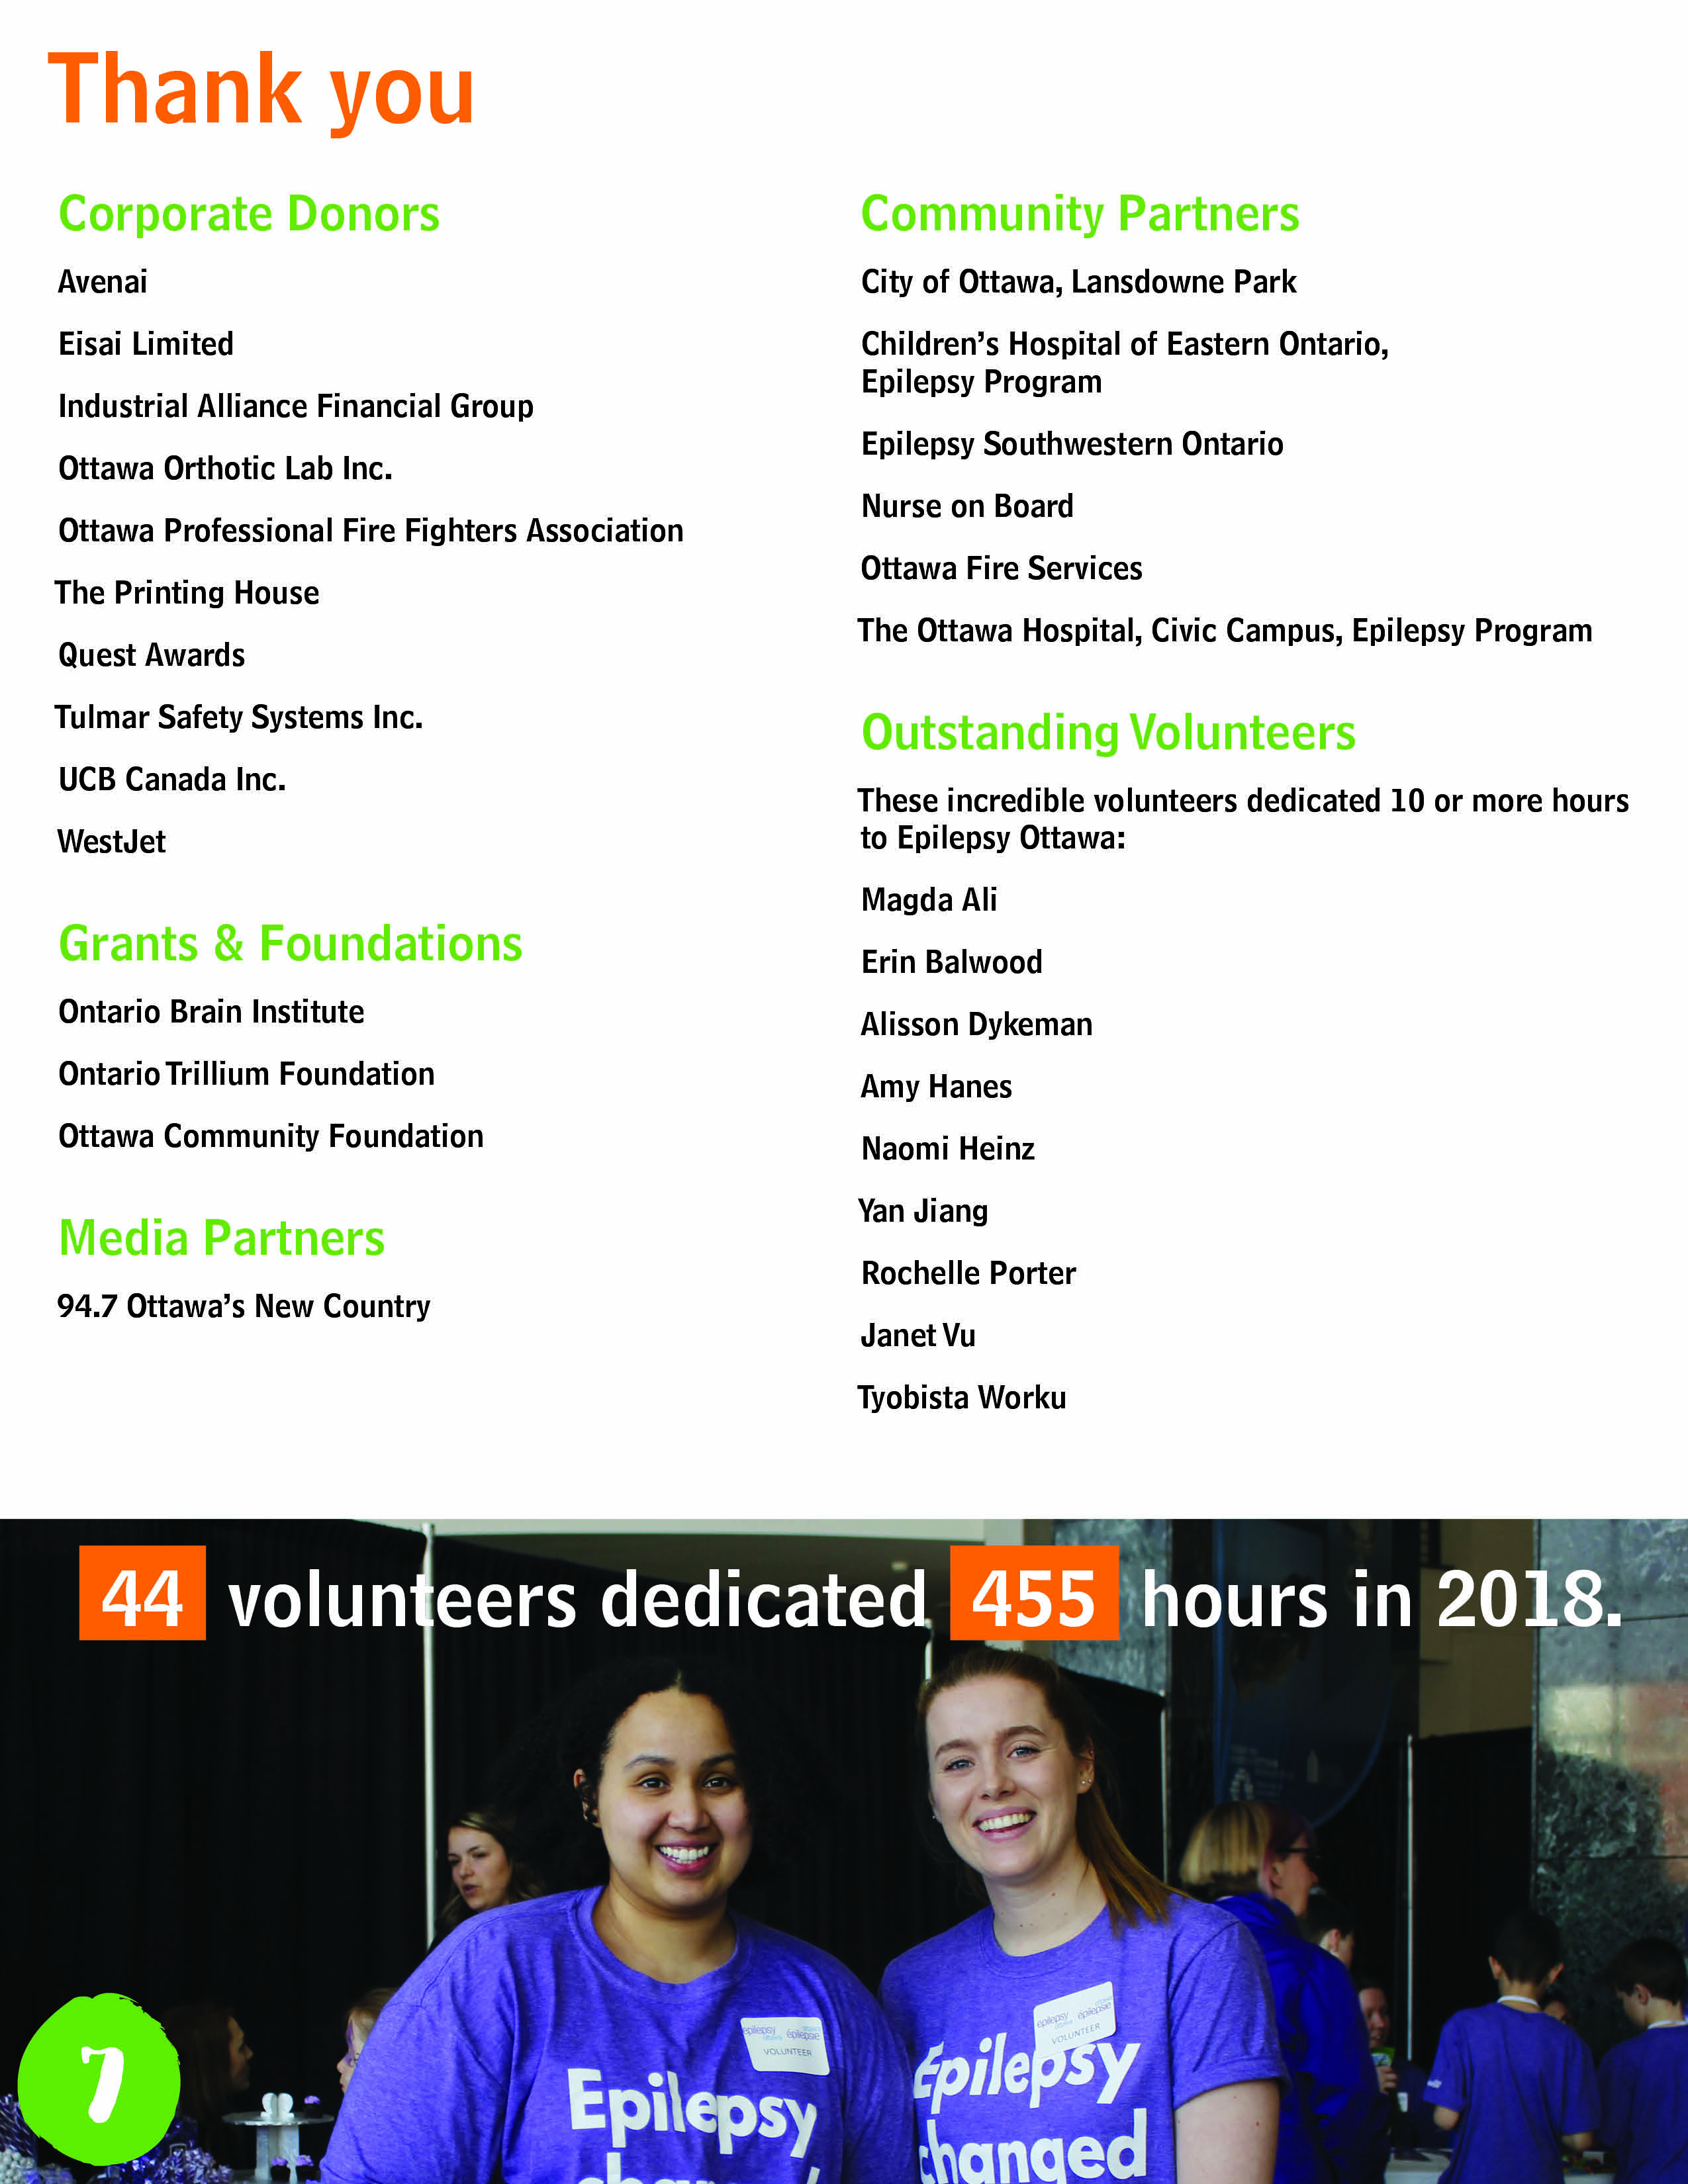 The Annual Report 2018 page 7